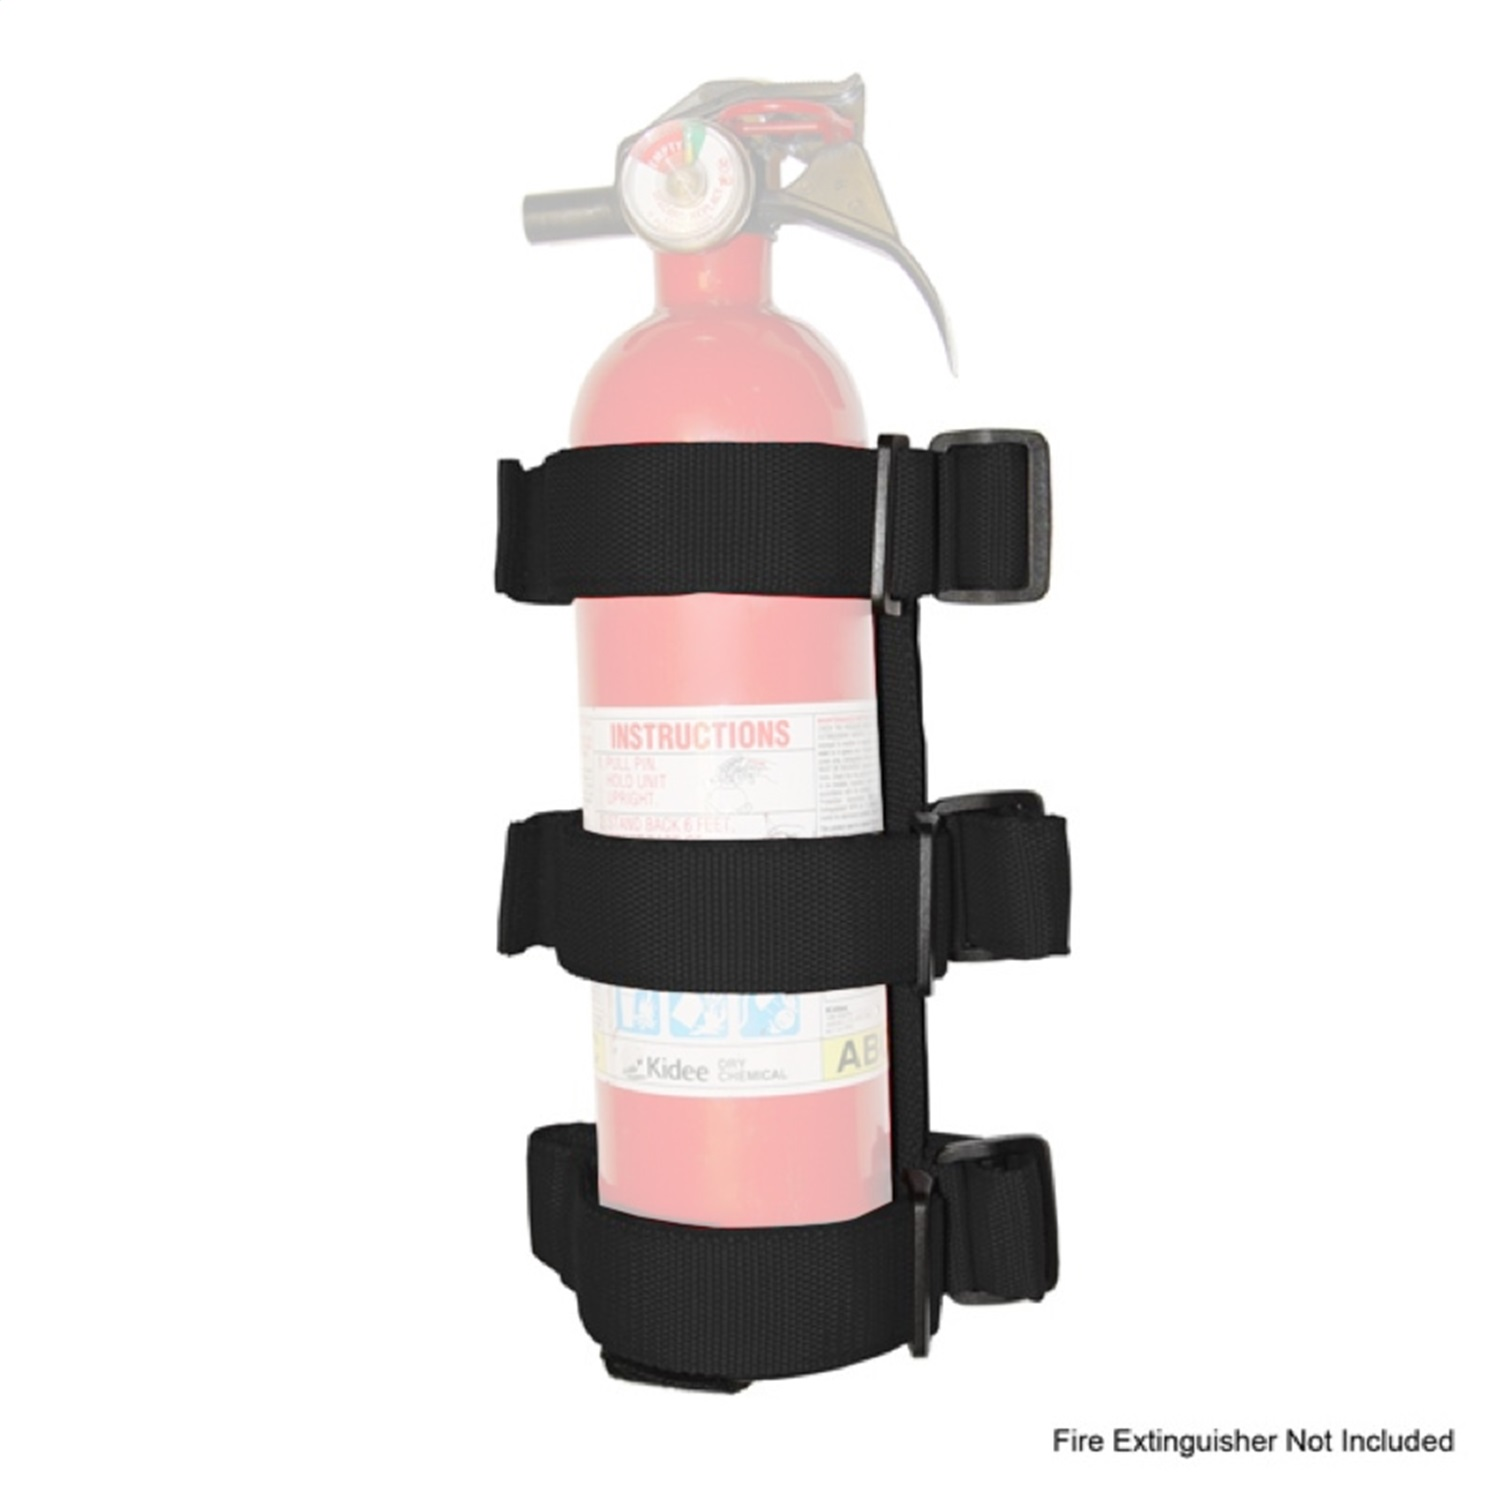 Rugged Ridge Fire Extinguisher